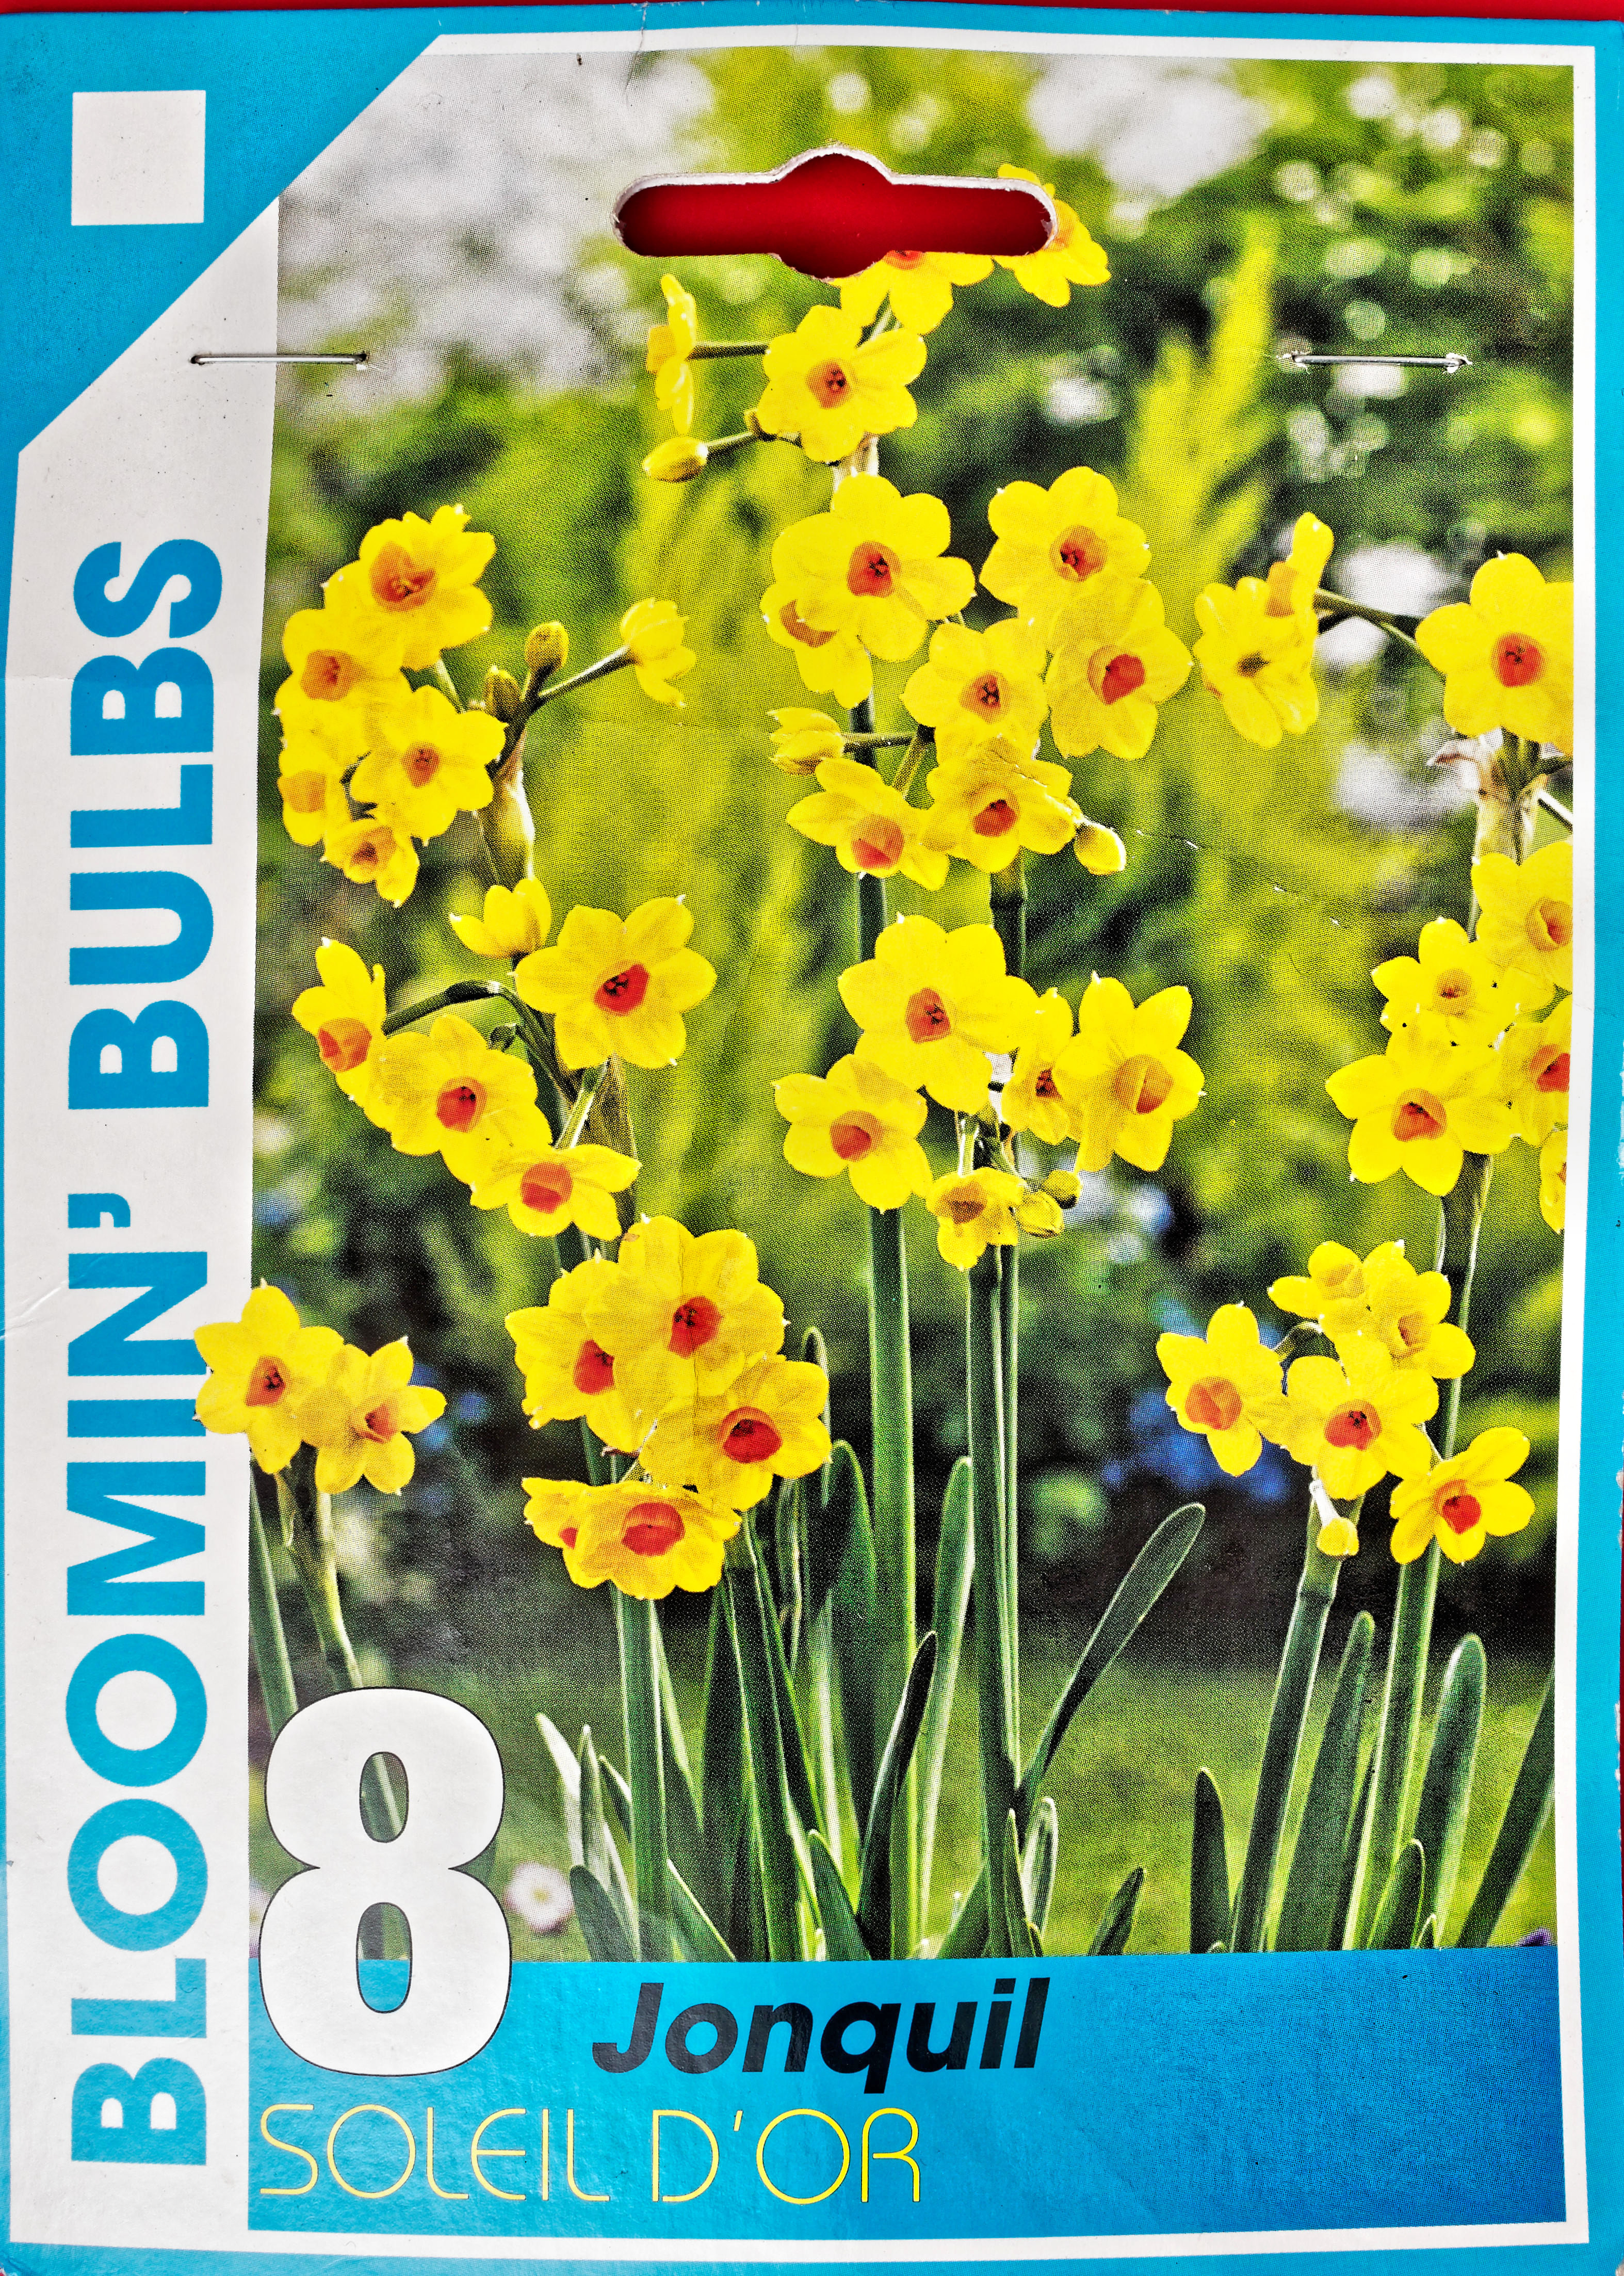 This should be Daffodils-2.jpeg.  Is it missing?